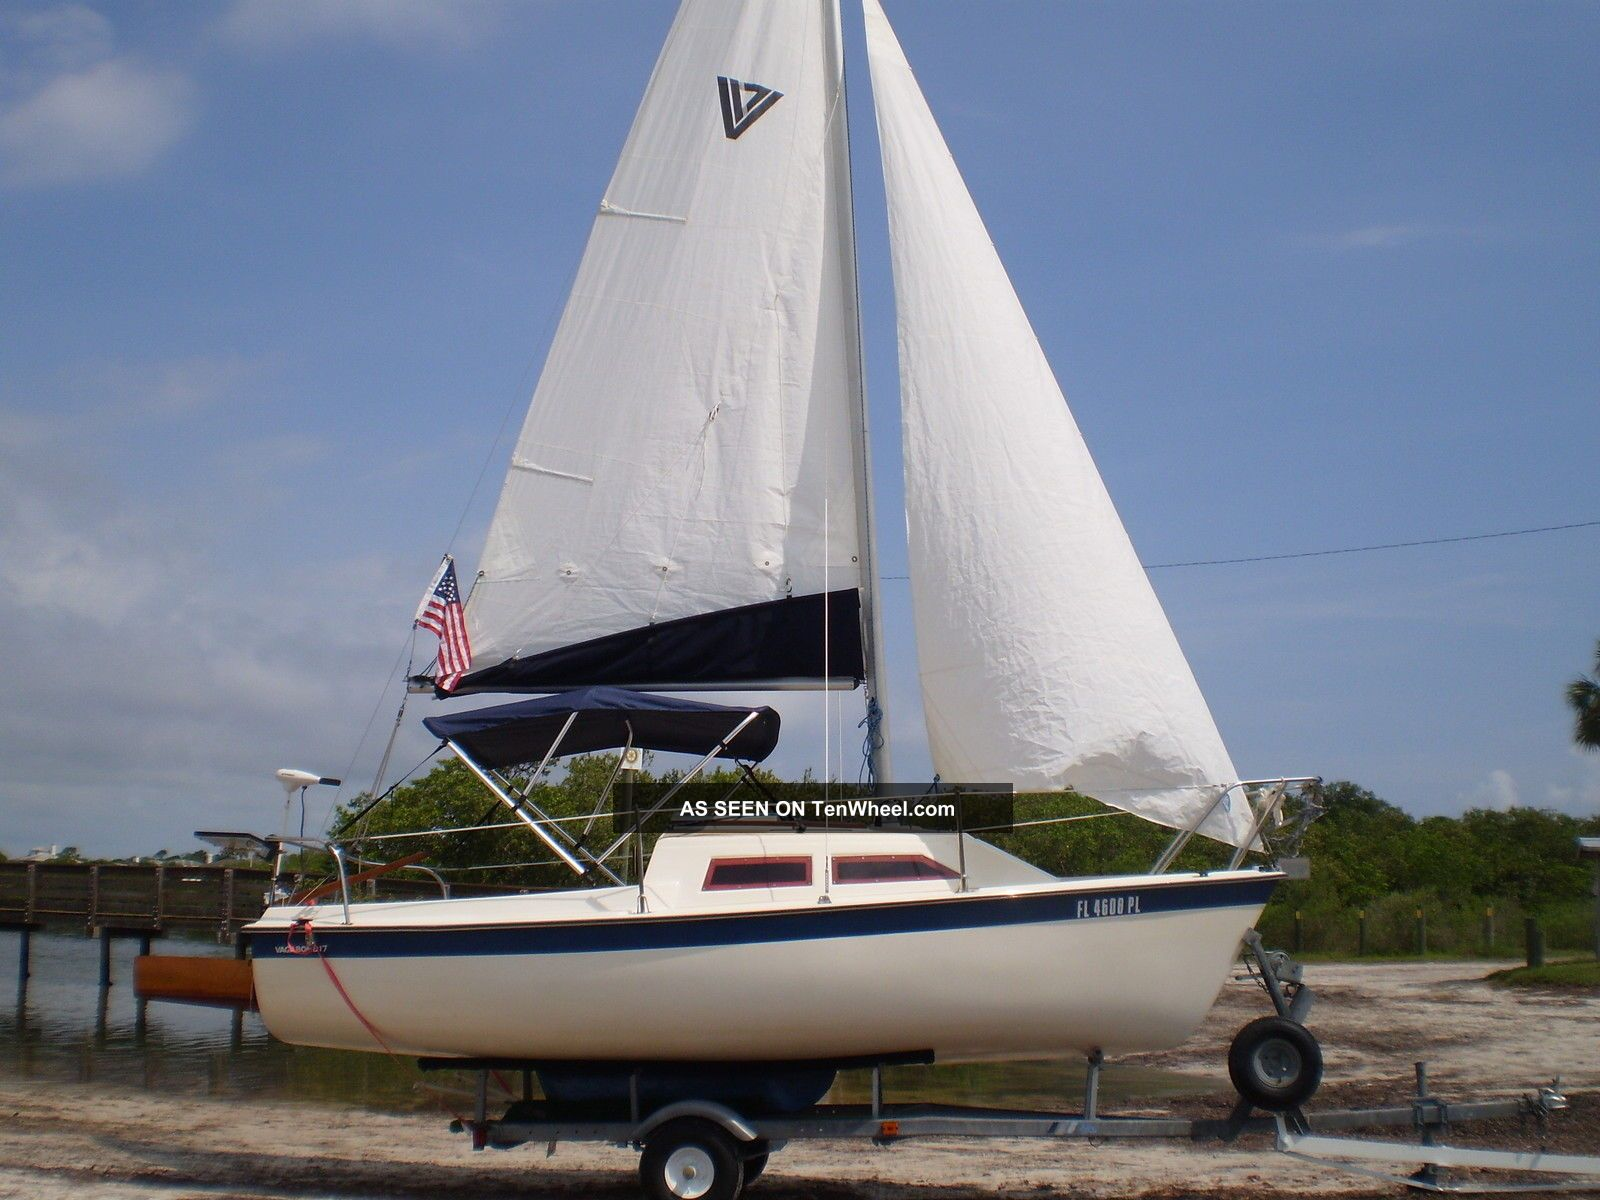 1982 Vagabond Sailboats Under 20 feet photo